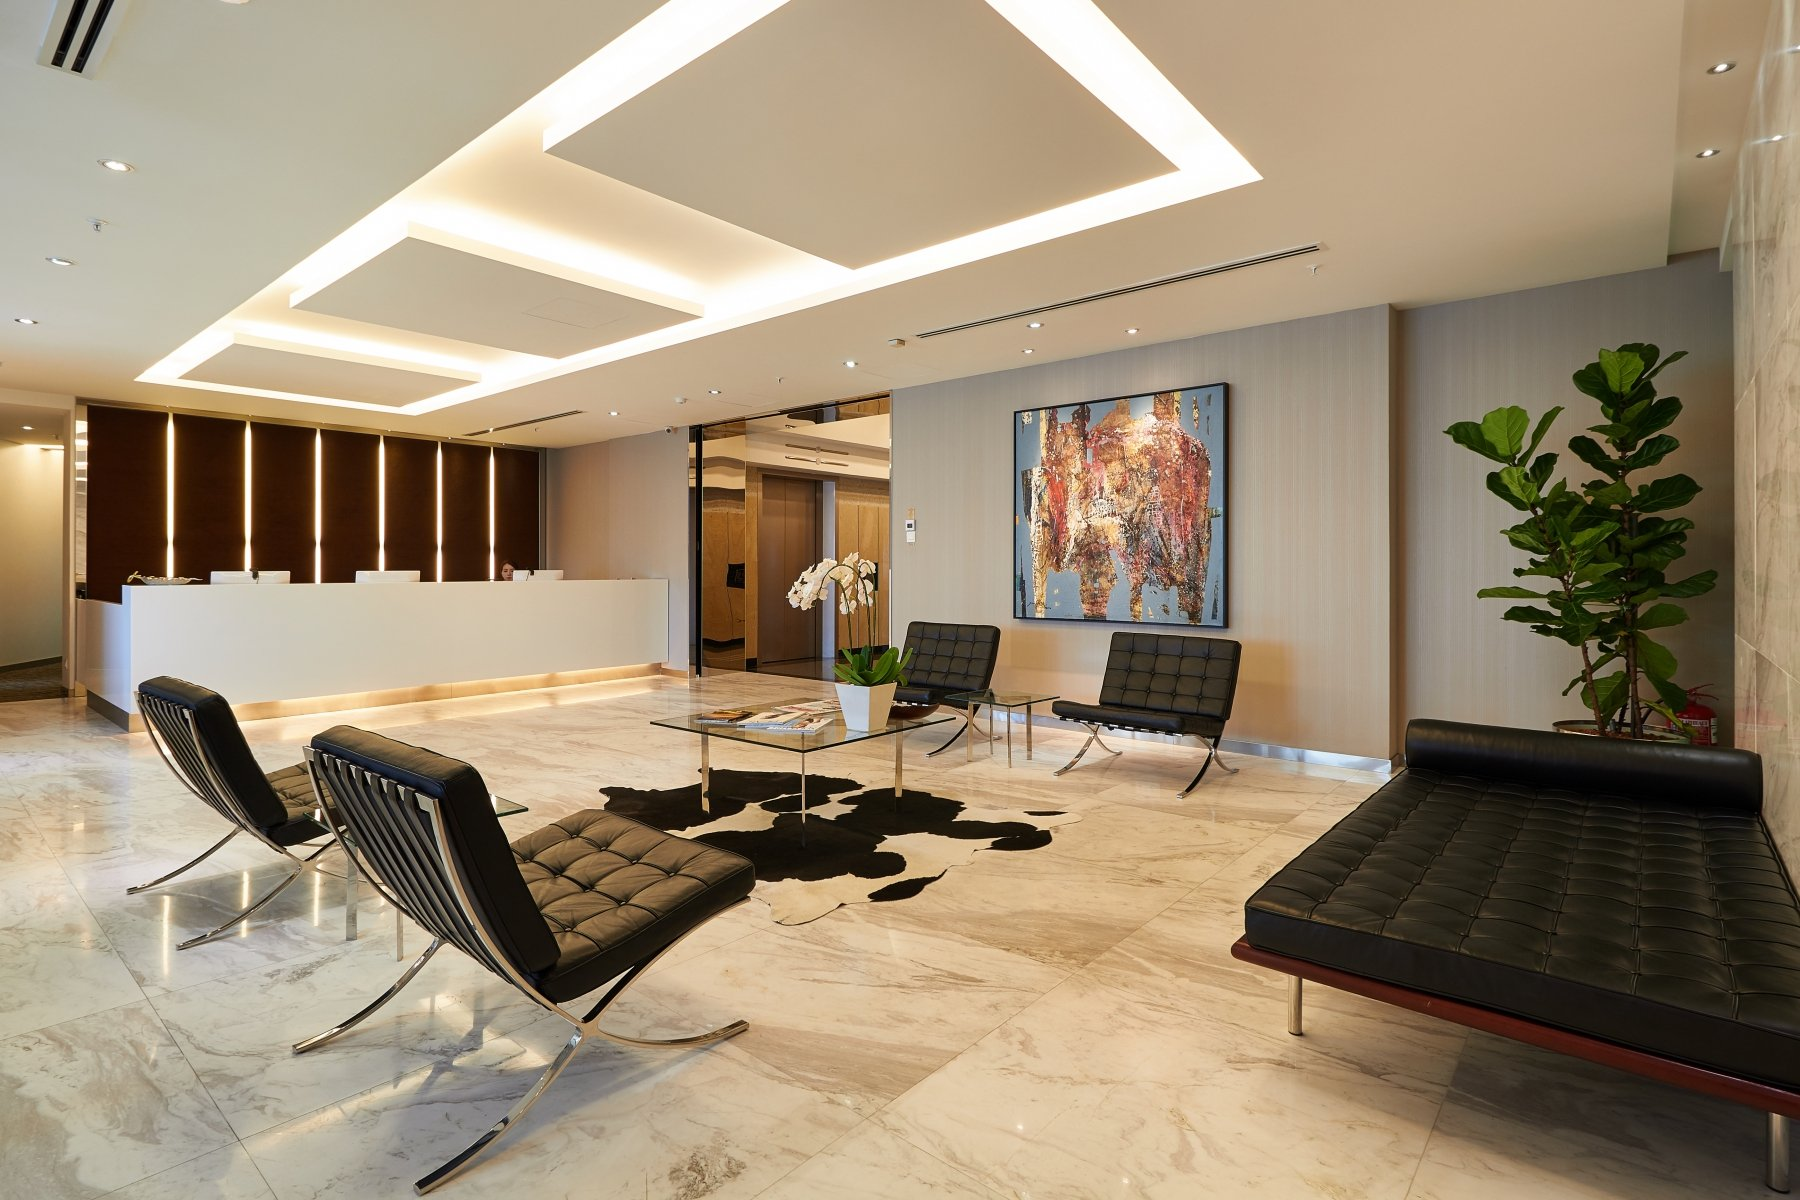 SERVICED OFFICES BY CEO SUITE MENARA MAXIS 26TH KUALA LUMPUR, MALAYSIA 164